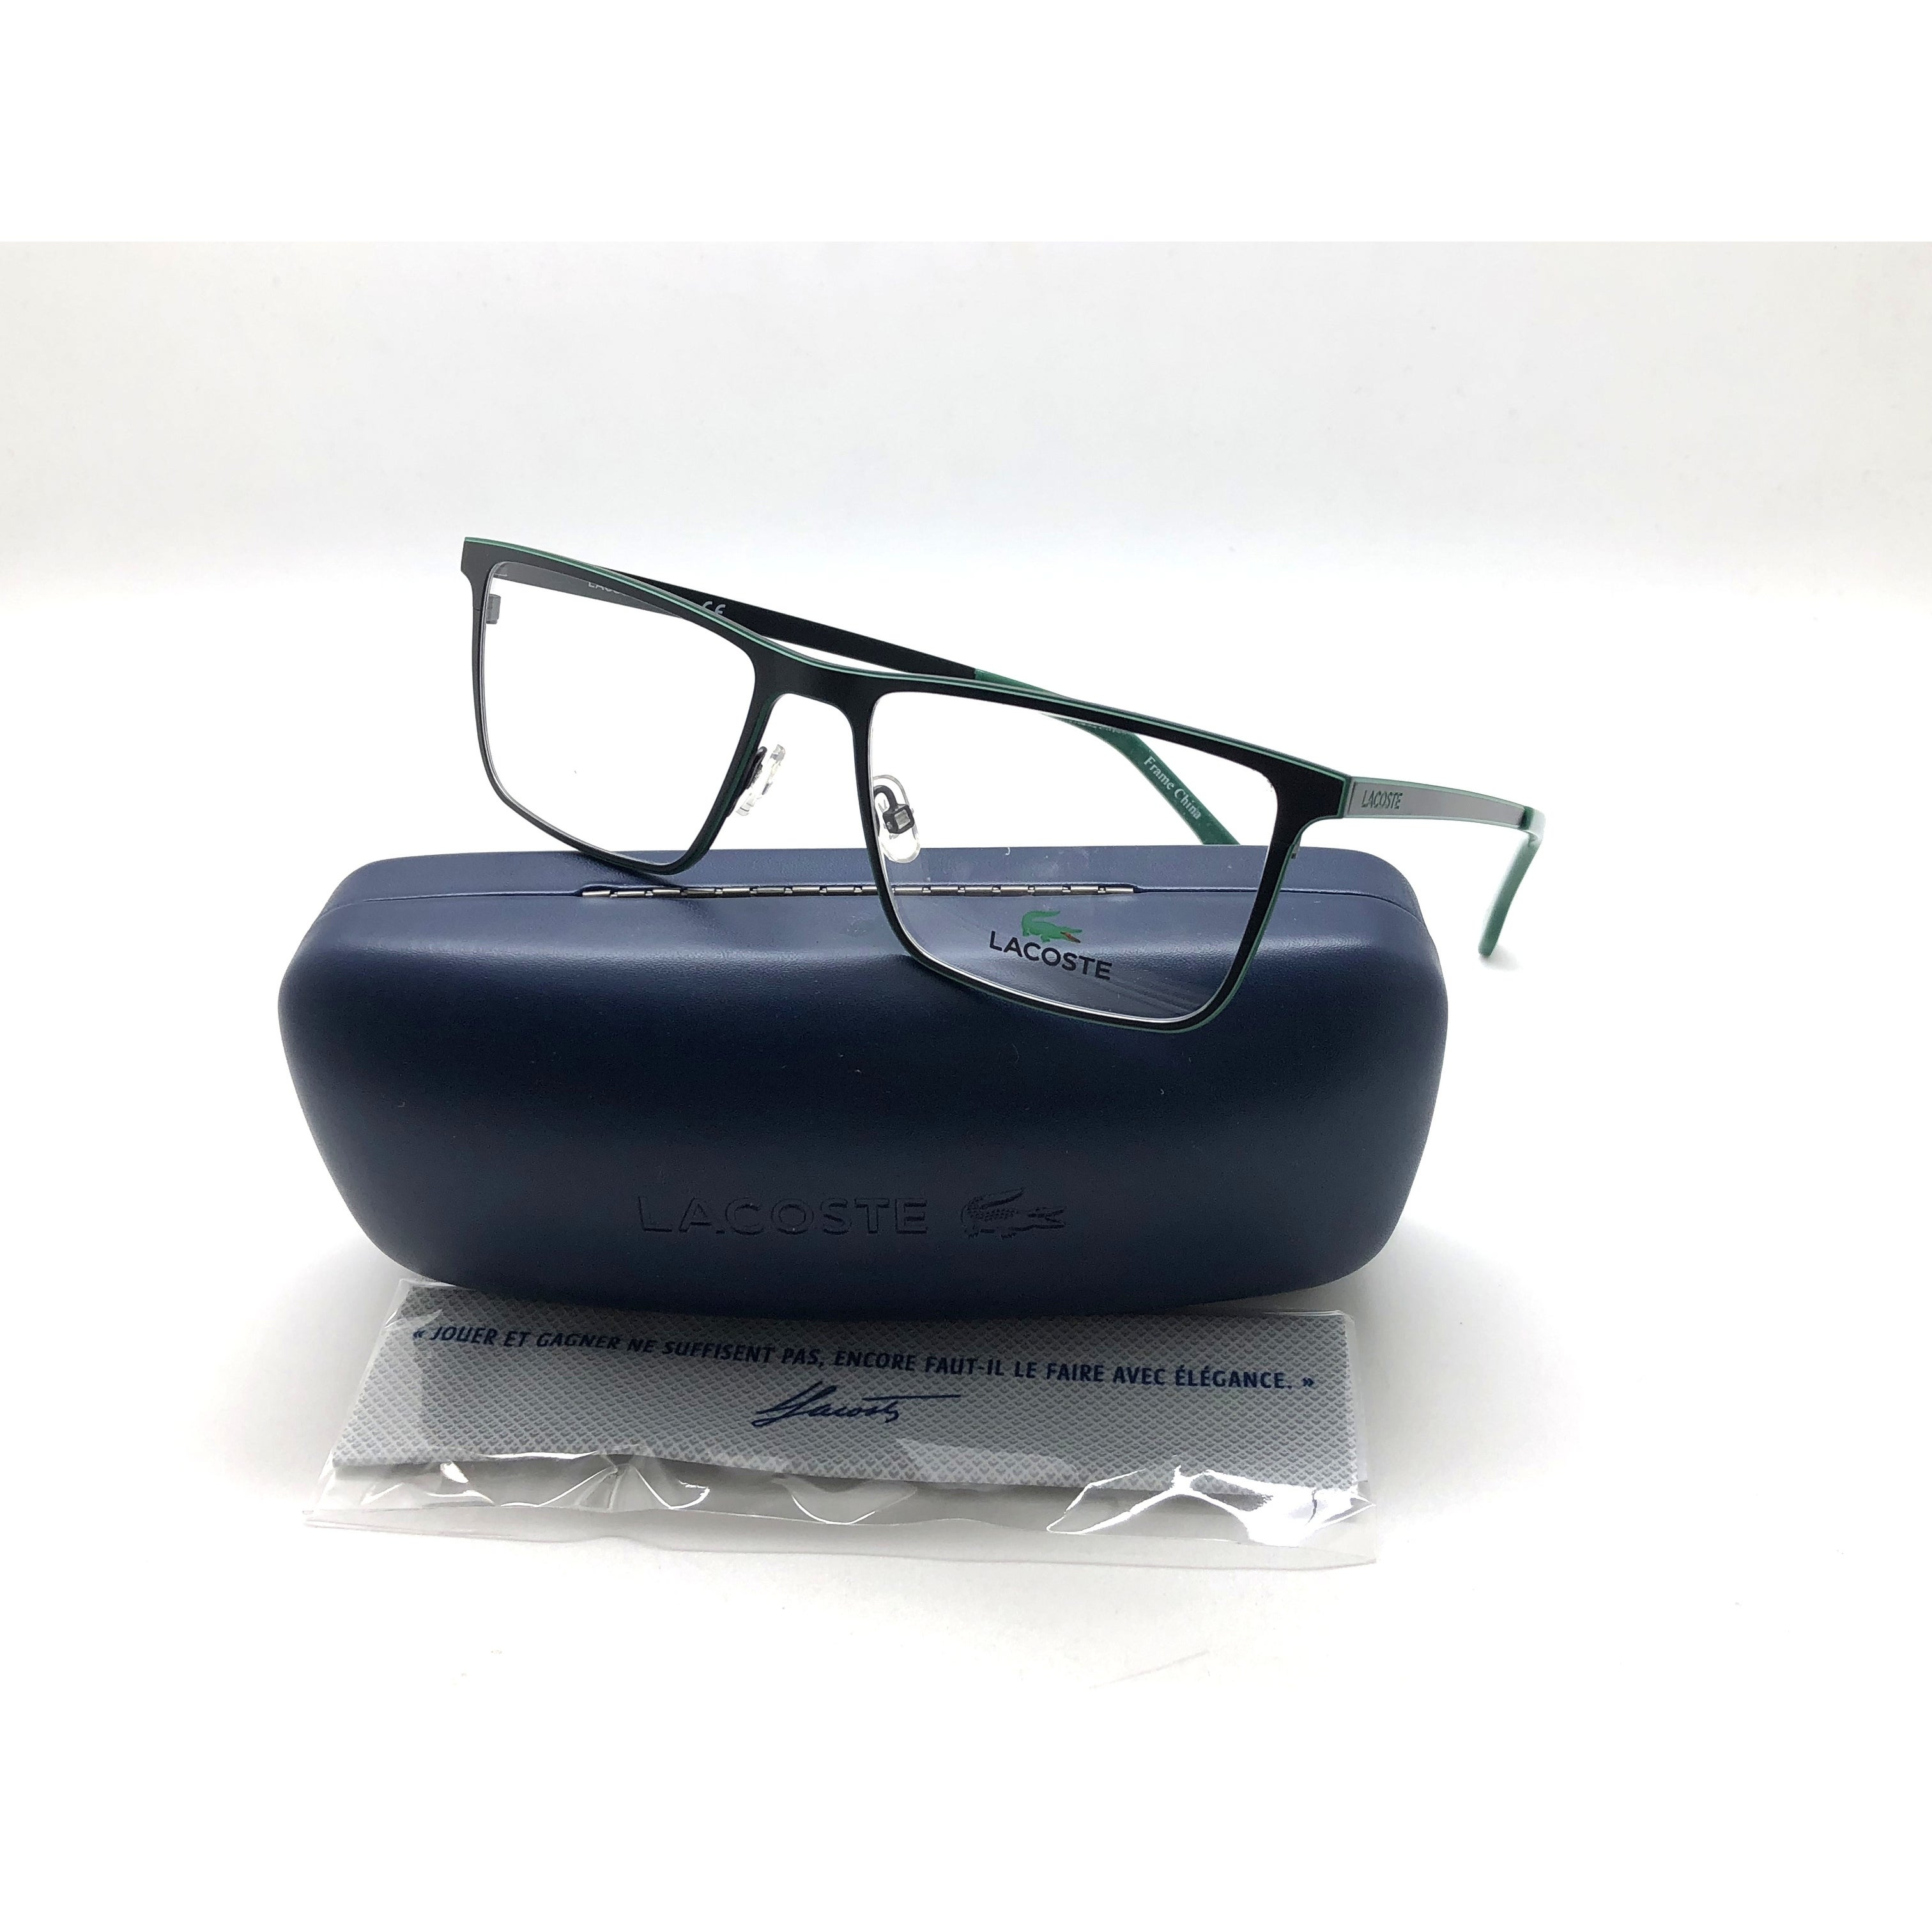 d537a641674e Shop New LACOSTE Eyeglasses Frame L2232 001 RX Matte Black 54-17-145 Unisex  Metal - Free Shipping Today - Overstock - 24250488